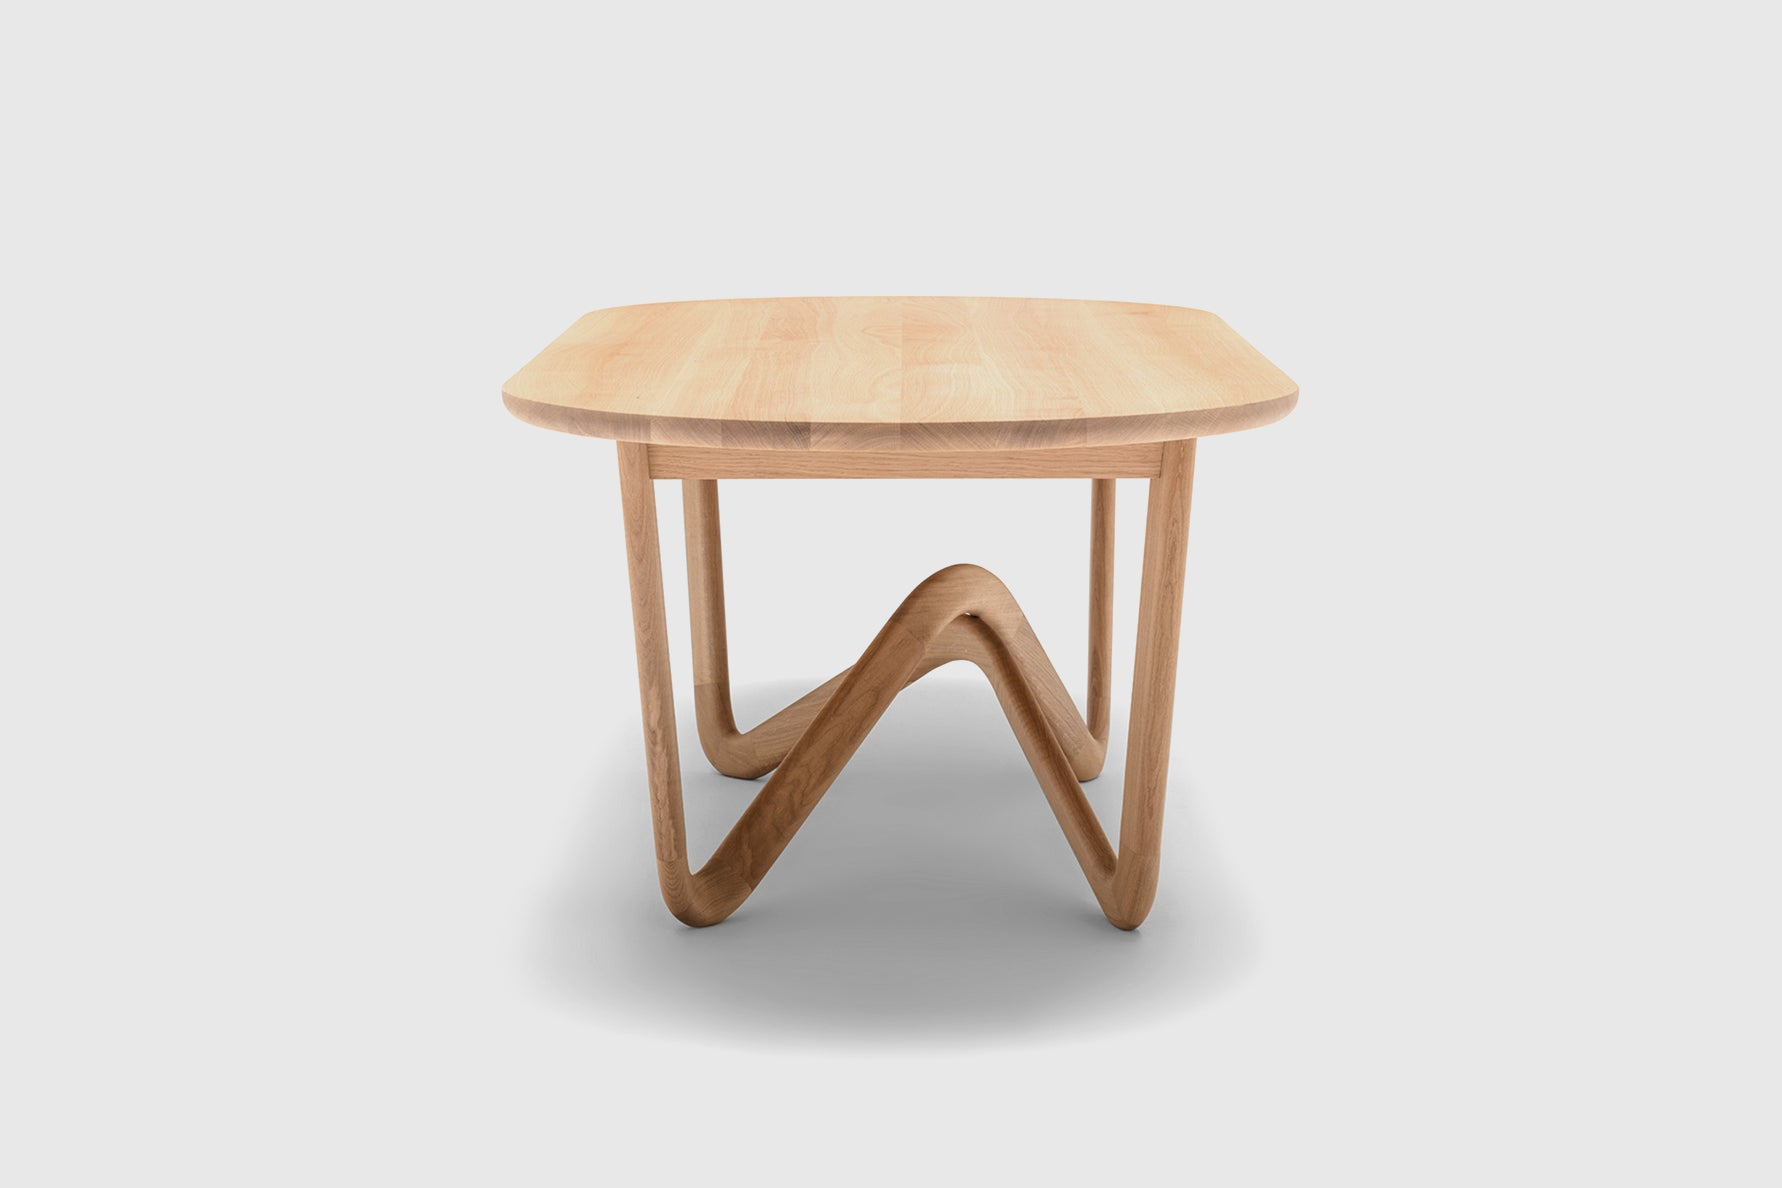 Bodo Sperlein Rolf Benz Oak Table 988